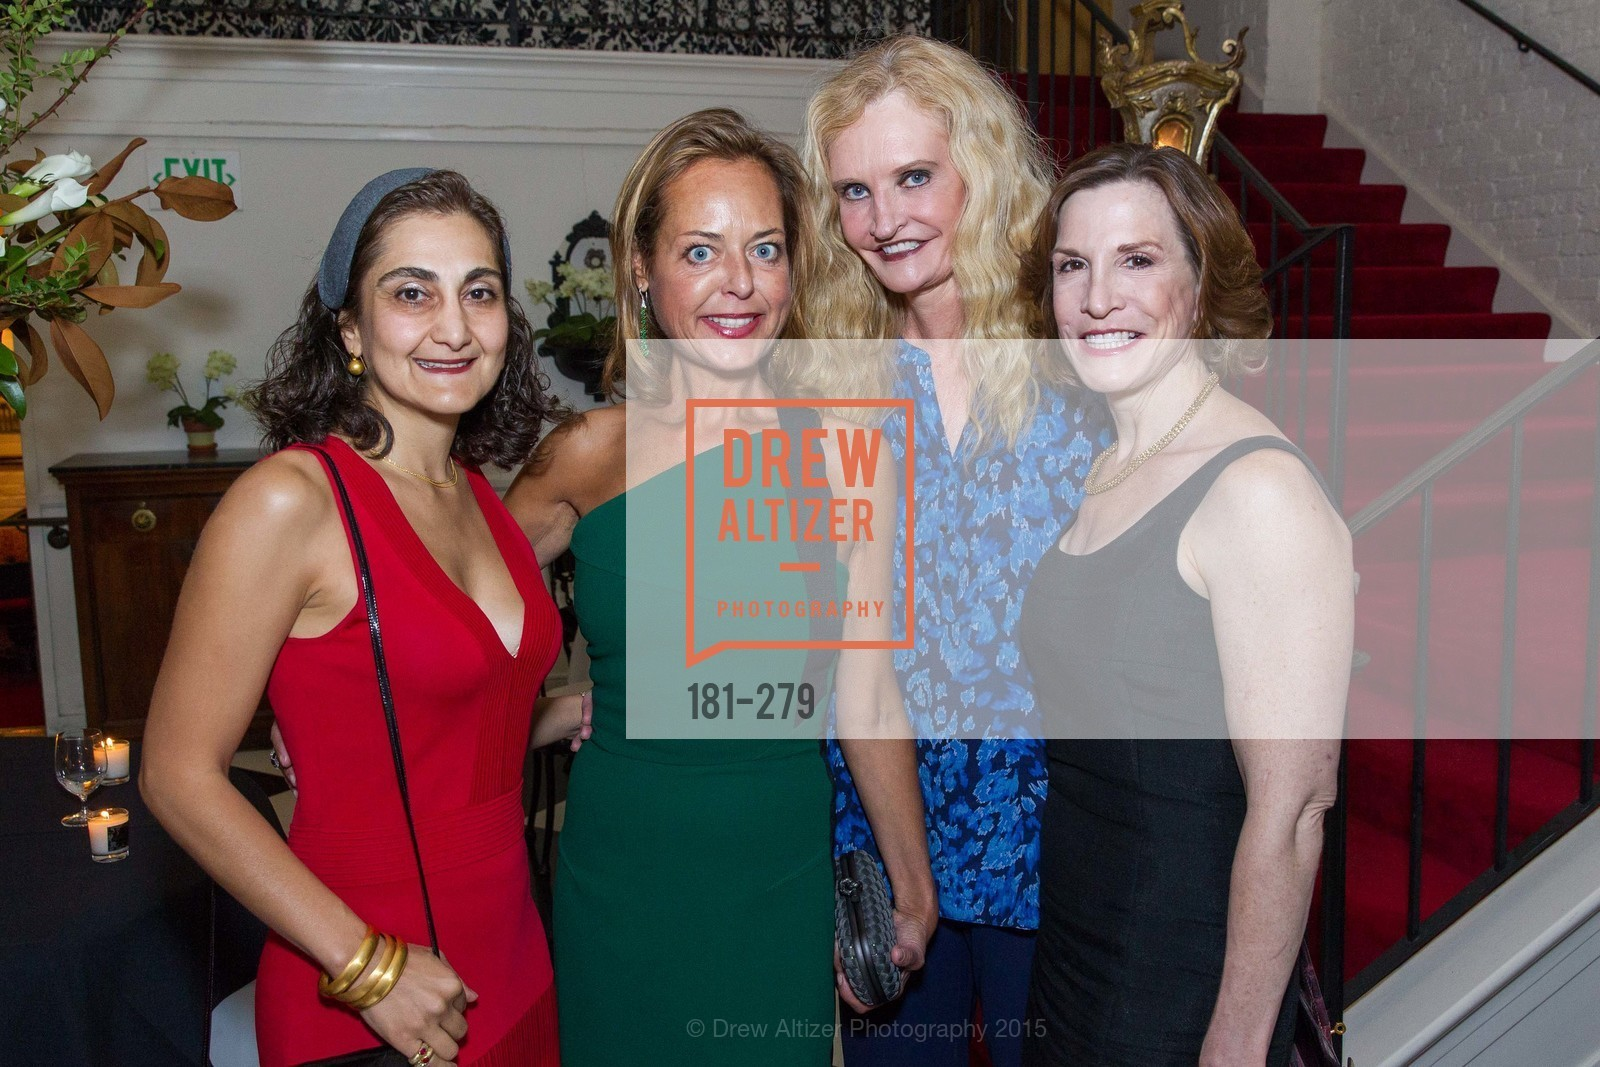 Fati Farmanfarmaian, Charlot Malin, Beth Townsend, Maria Quiros, De Grisogono Kicks off the Opera Opening, Villa Taverna, September 9th, 2015,Drew Altizer, Drew Altizer Photography, full-service event agency, private events, San Francisco photographer, photographer California